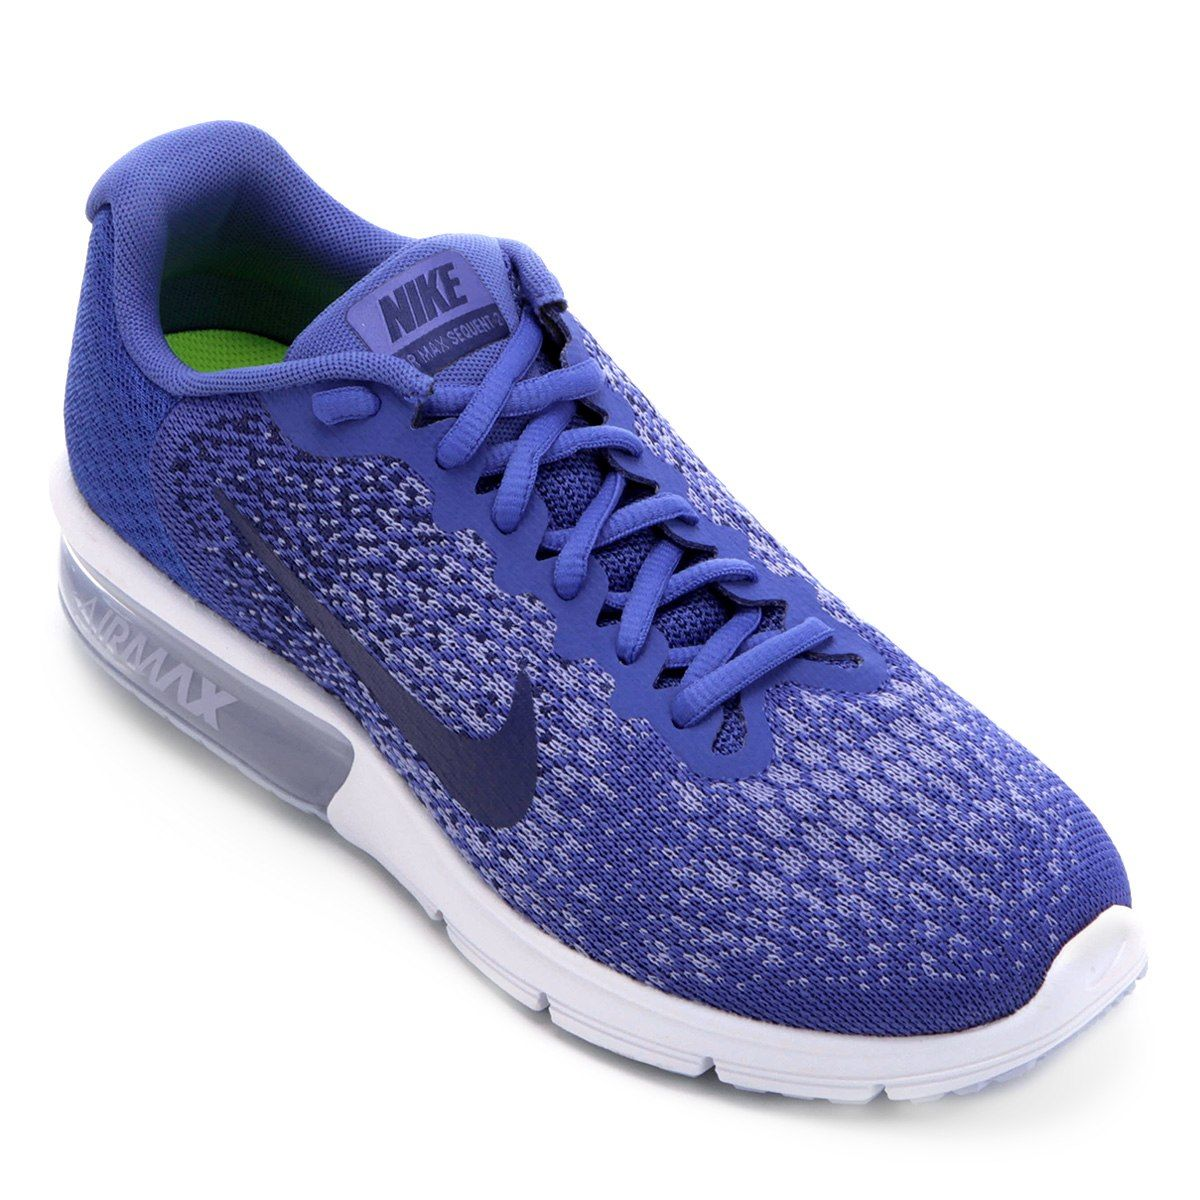 79cd8a1c9c Tênis Nike Air Max Sequent 4.5 - Masculino - Joinville Sportcenter